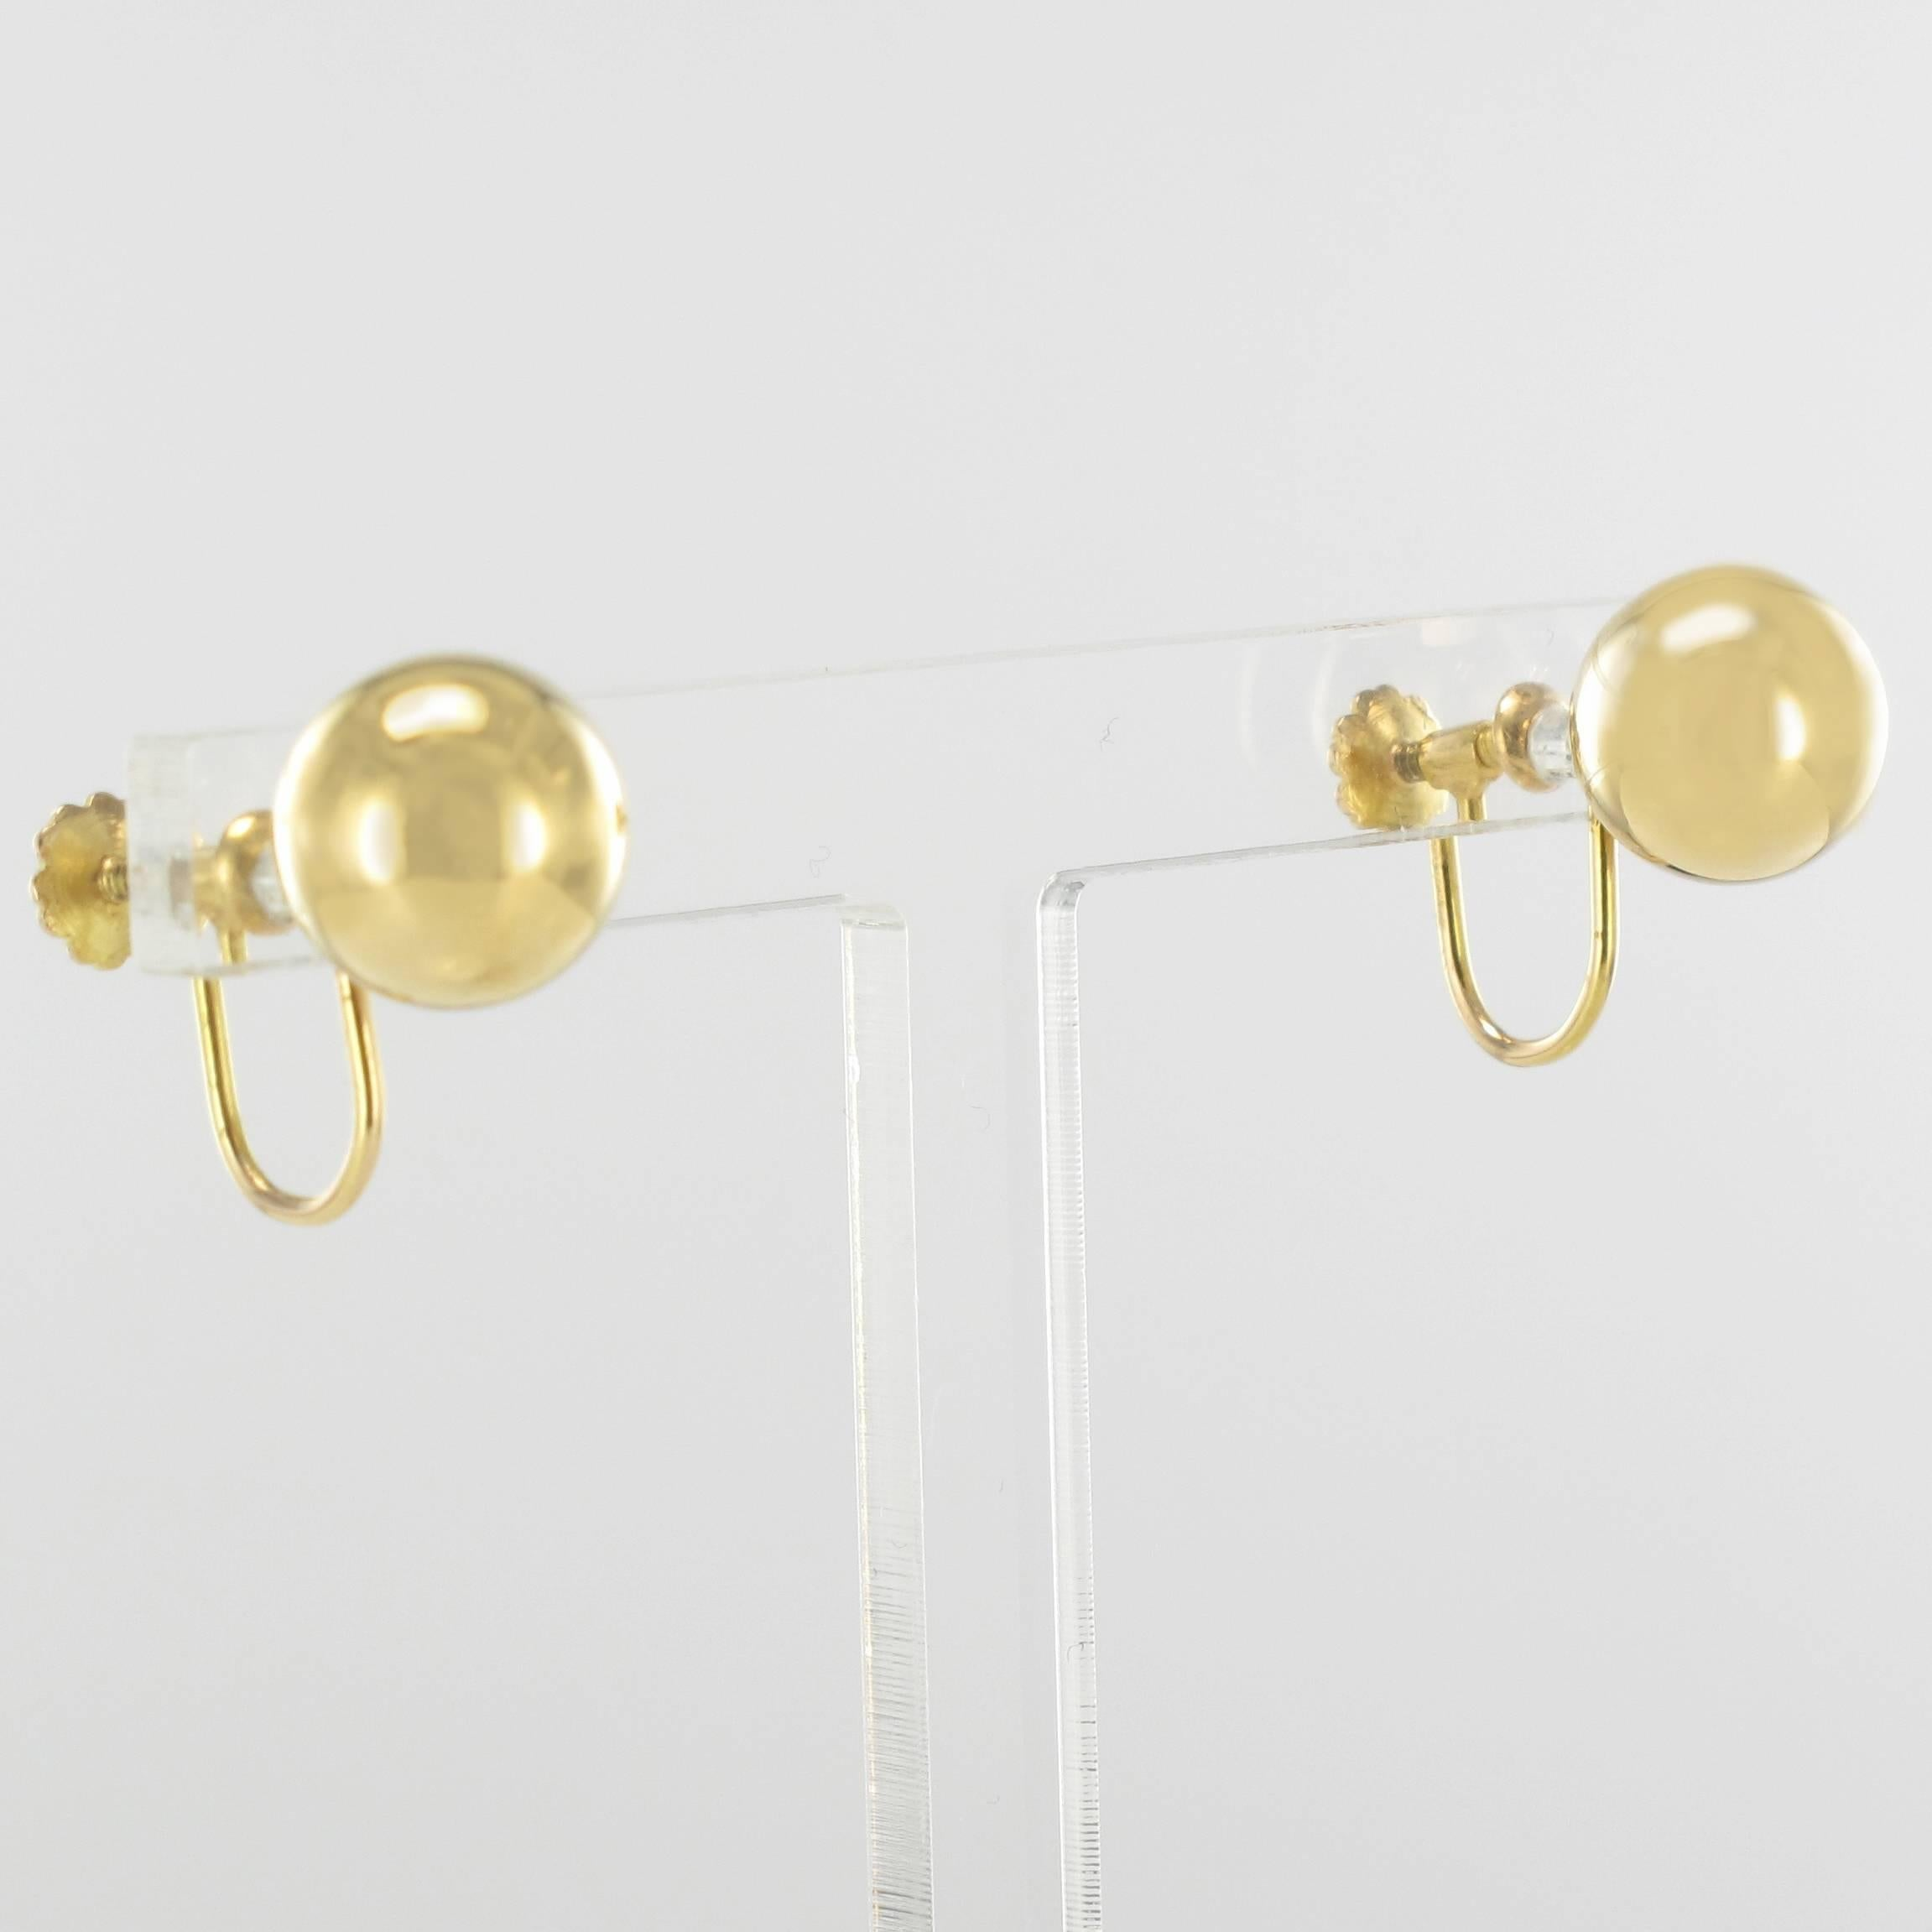 jewellery pearl villa and pearls earrings image rosie products yellow kent gold stud